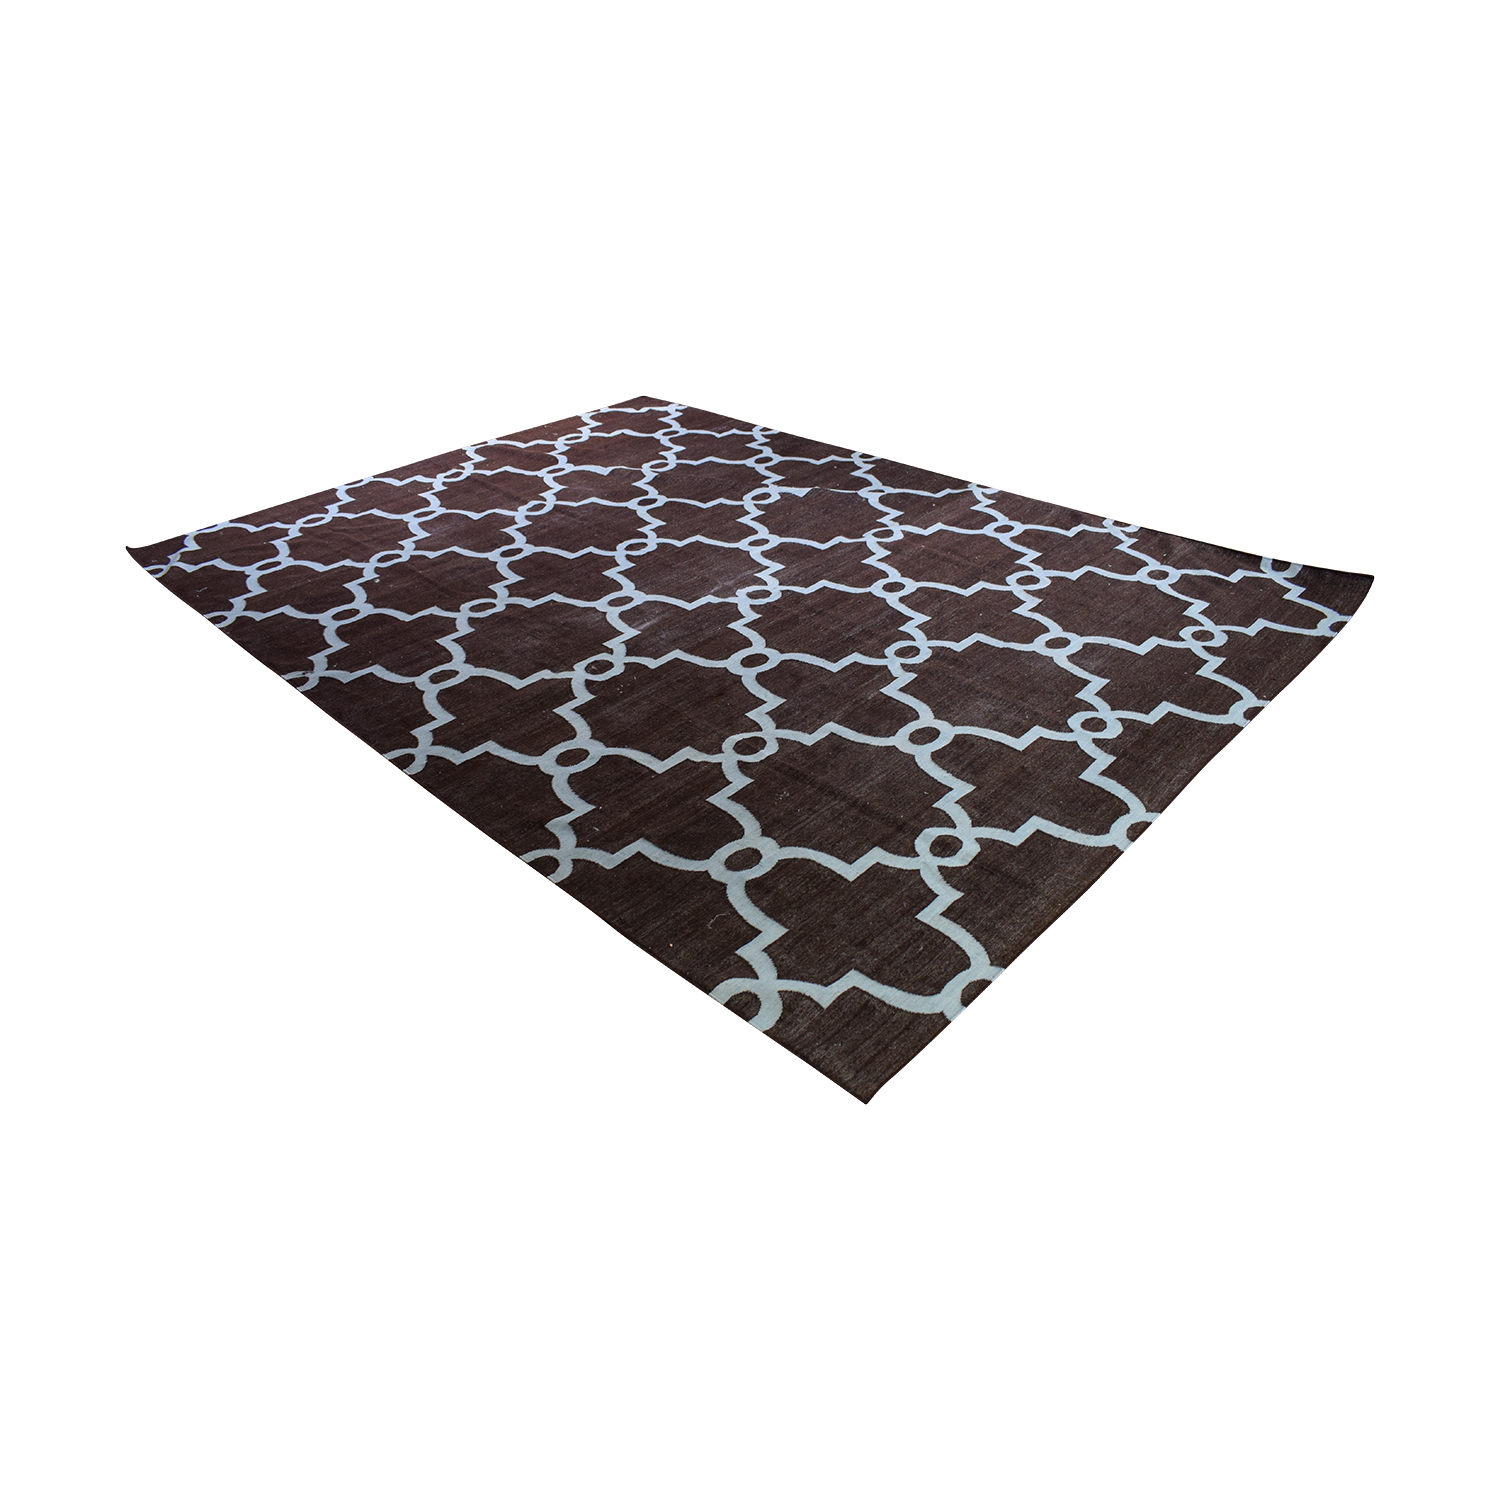 Obeetee Obeetee Brown Dhurrie Hand Knotted Wool Rug discount